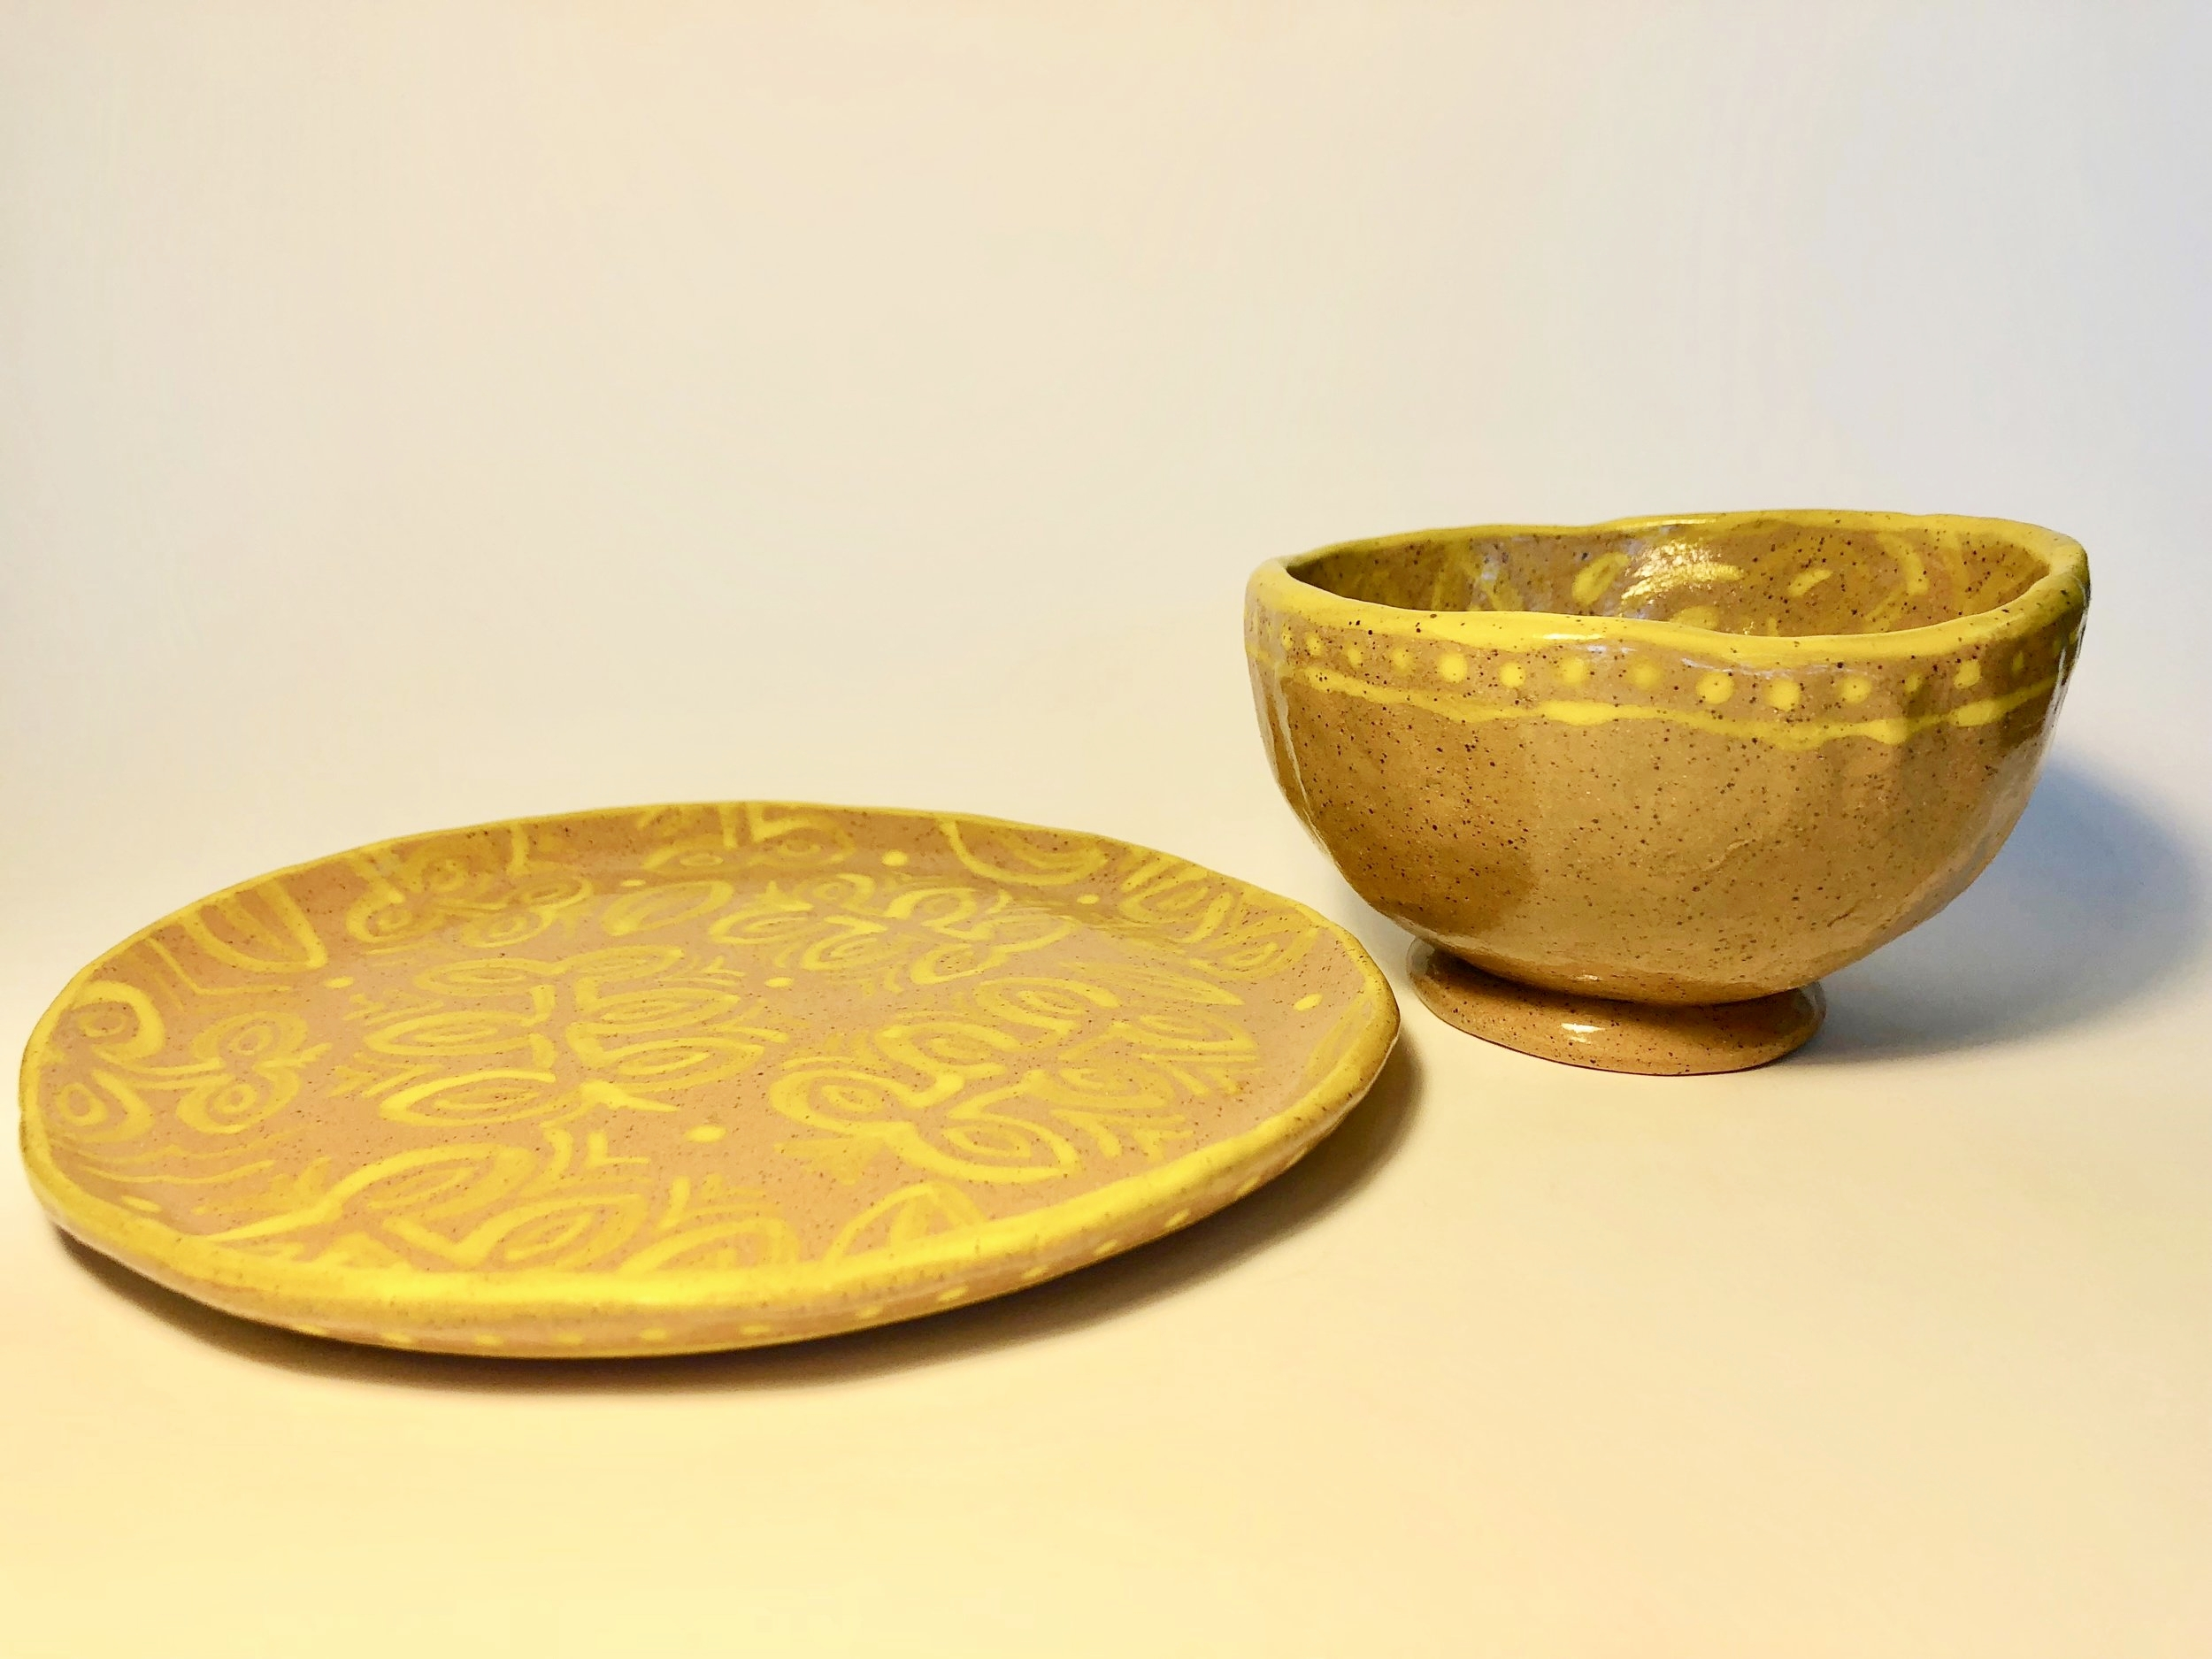 Hand-painted plate and pinch pot bowl in yellow